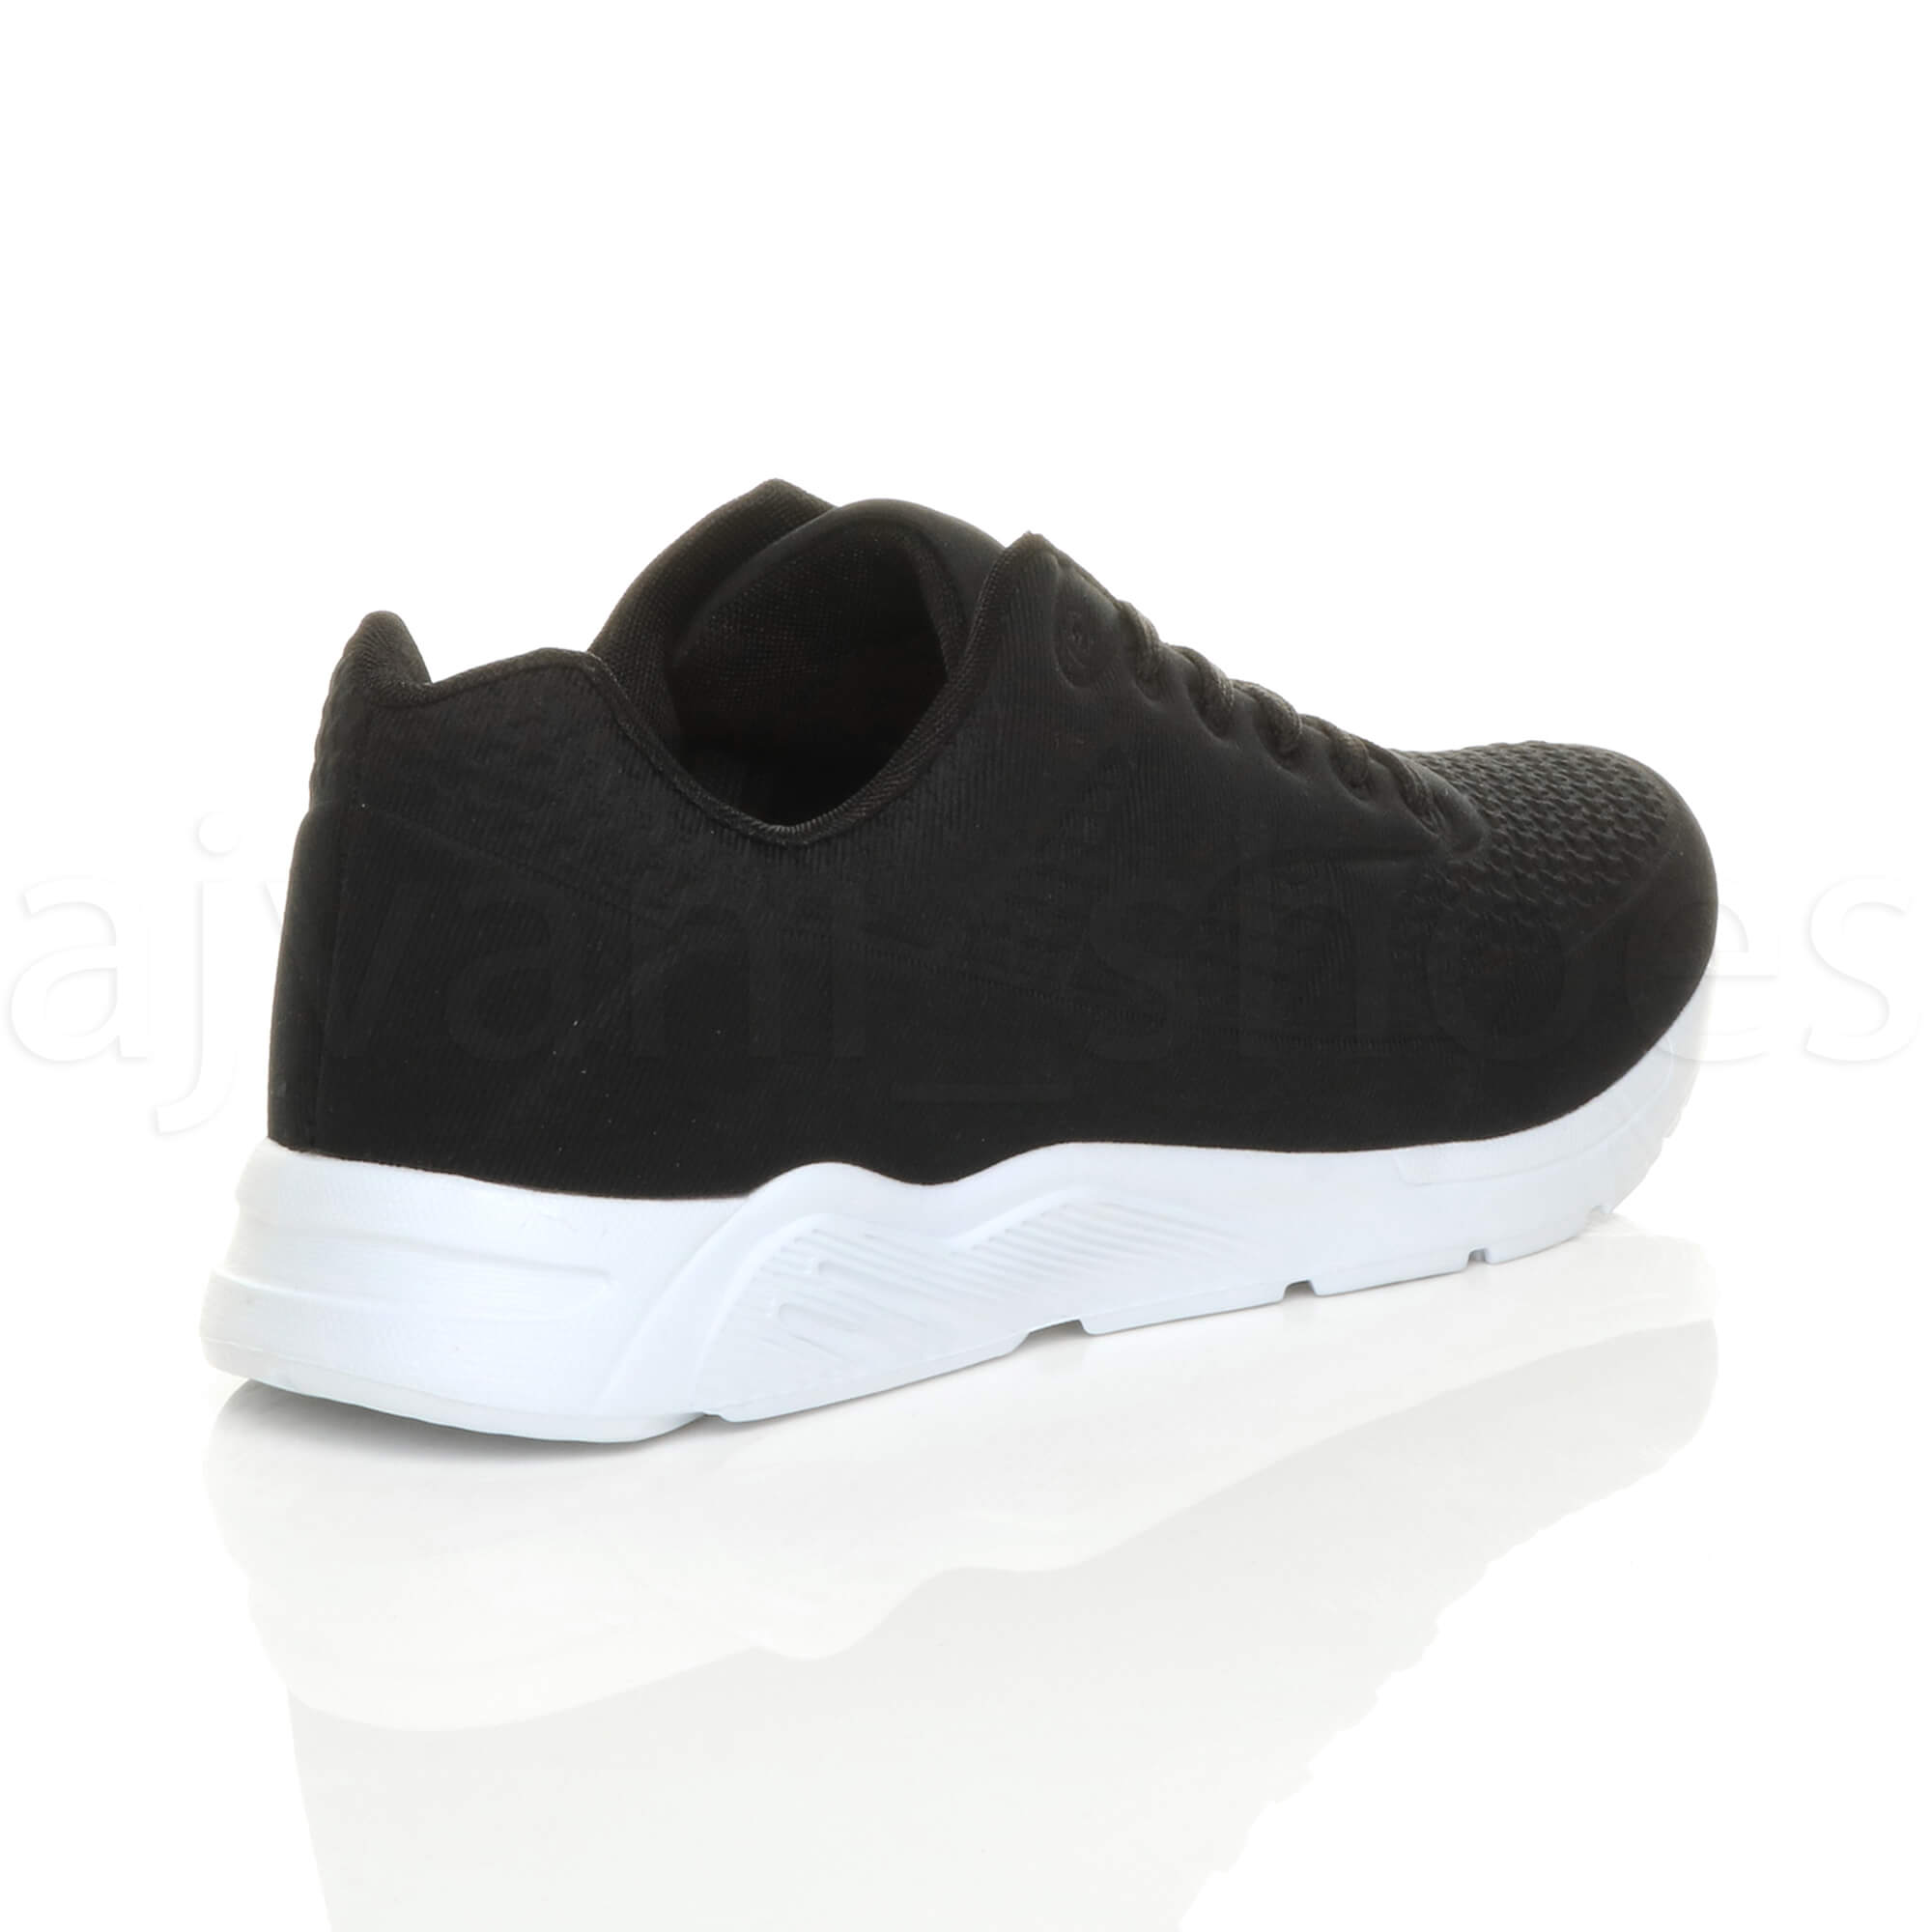 MENS-LACE-UP-FLEXIBLE-SOLE-RUNNING-SPORT-GYM-FITNESS-TRAINERS-SNEAKERS-SIZE miniatuur 5